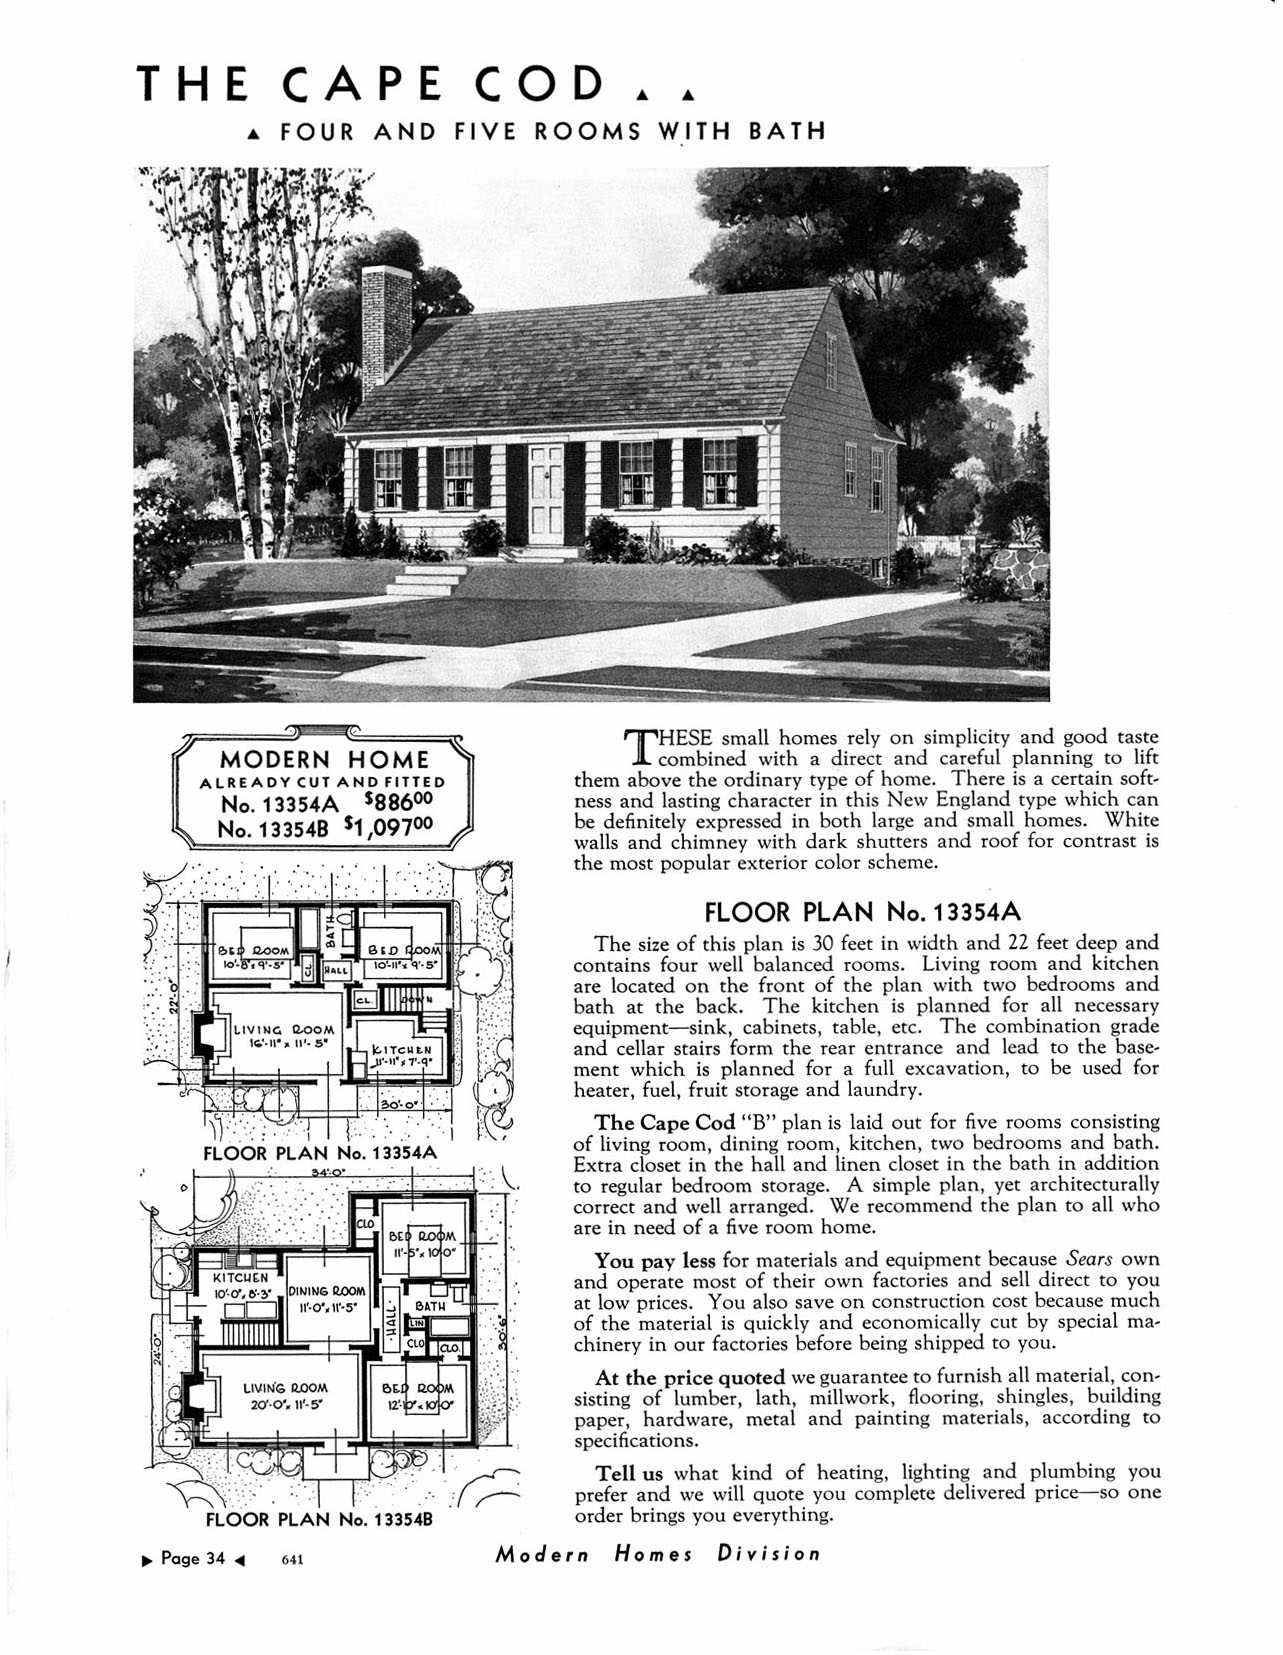 sears kit home floor plan is 90 my house exterior very similar